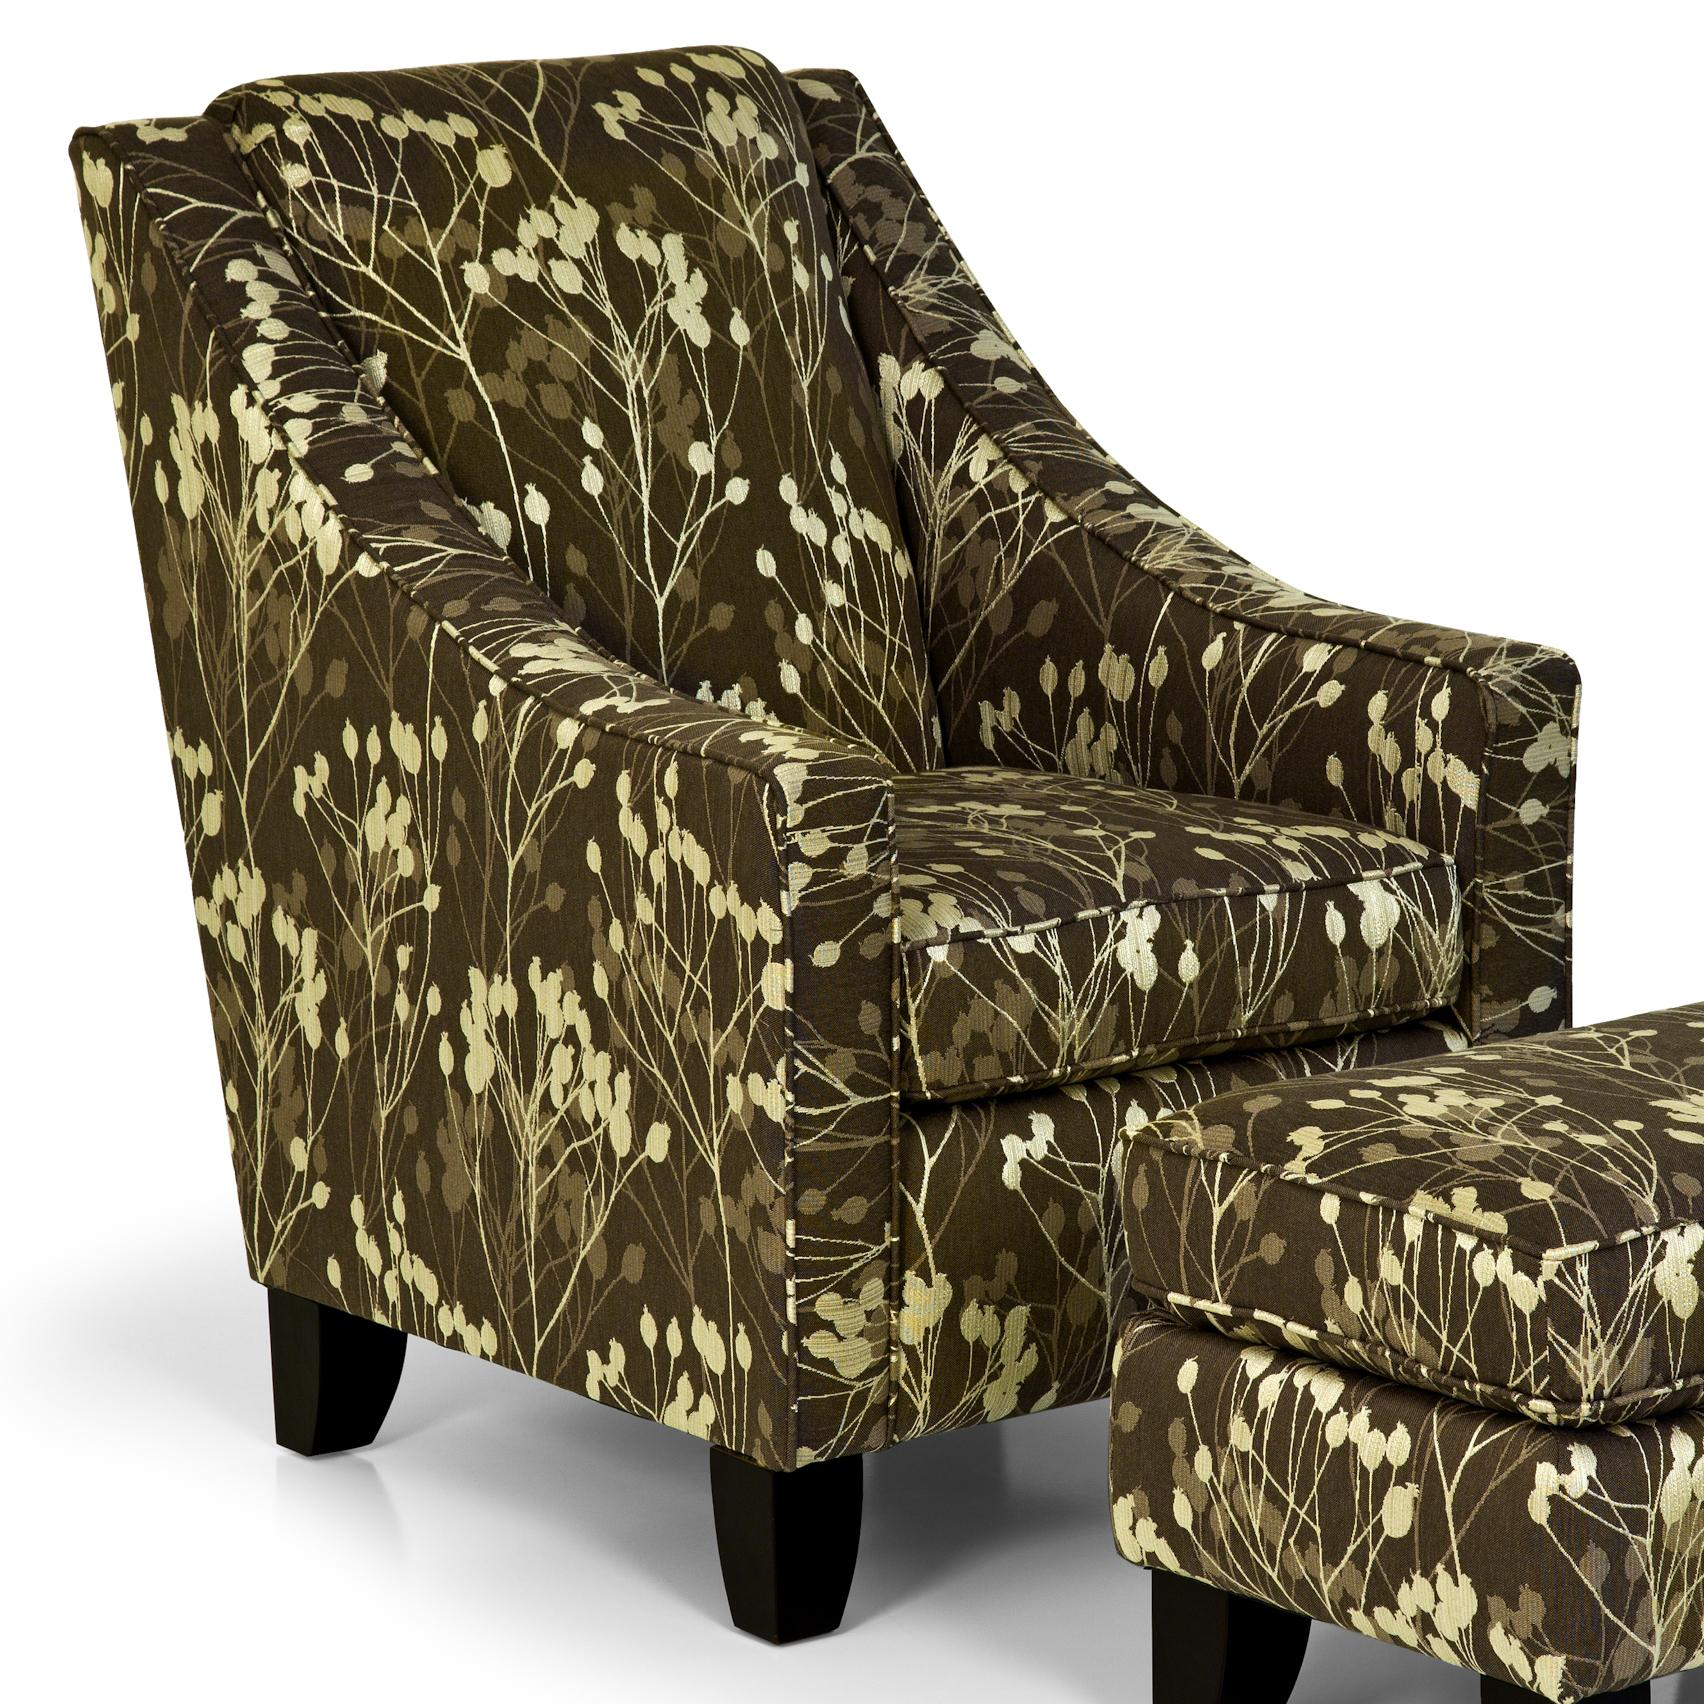 Stanton Accent Chairs and Ottomans Contemporary Accent Chair with